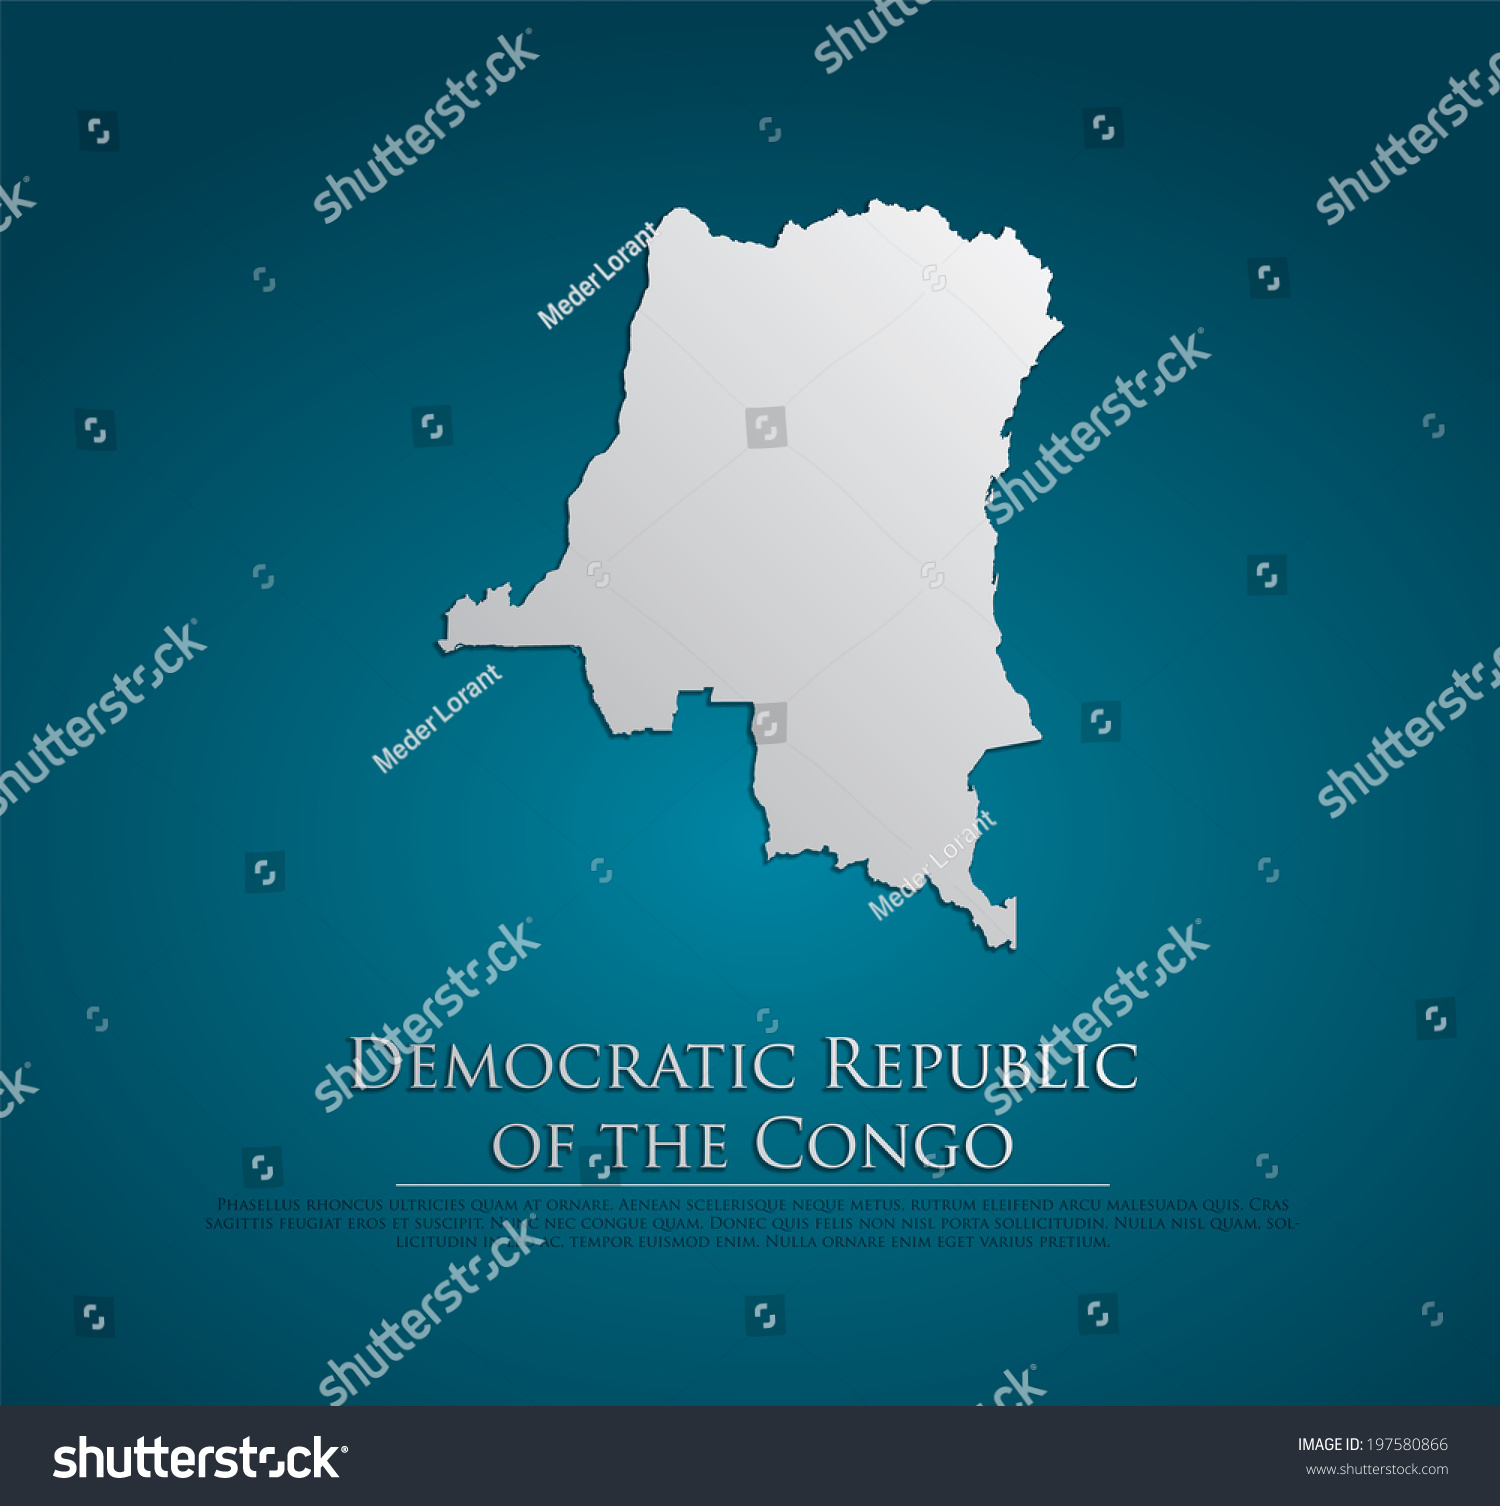 the democratic republic of congo essay Latest research from the world bank on development in congo, democratic republic of, including reports, studies, publications, working papers and articles.